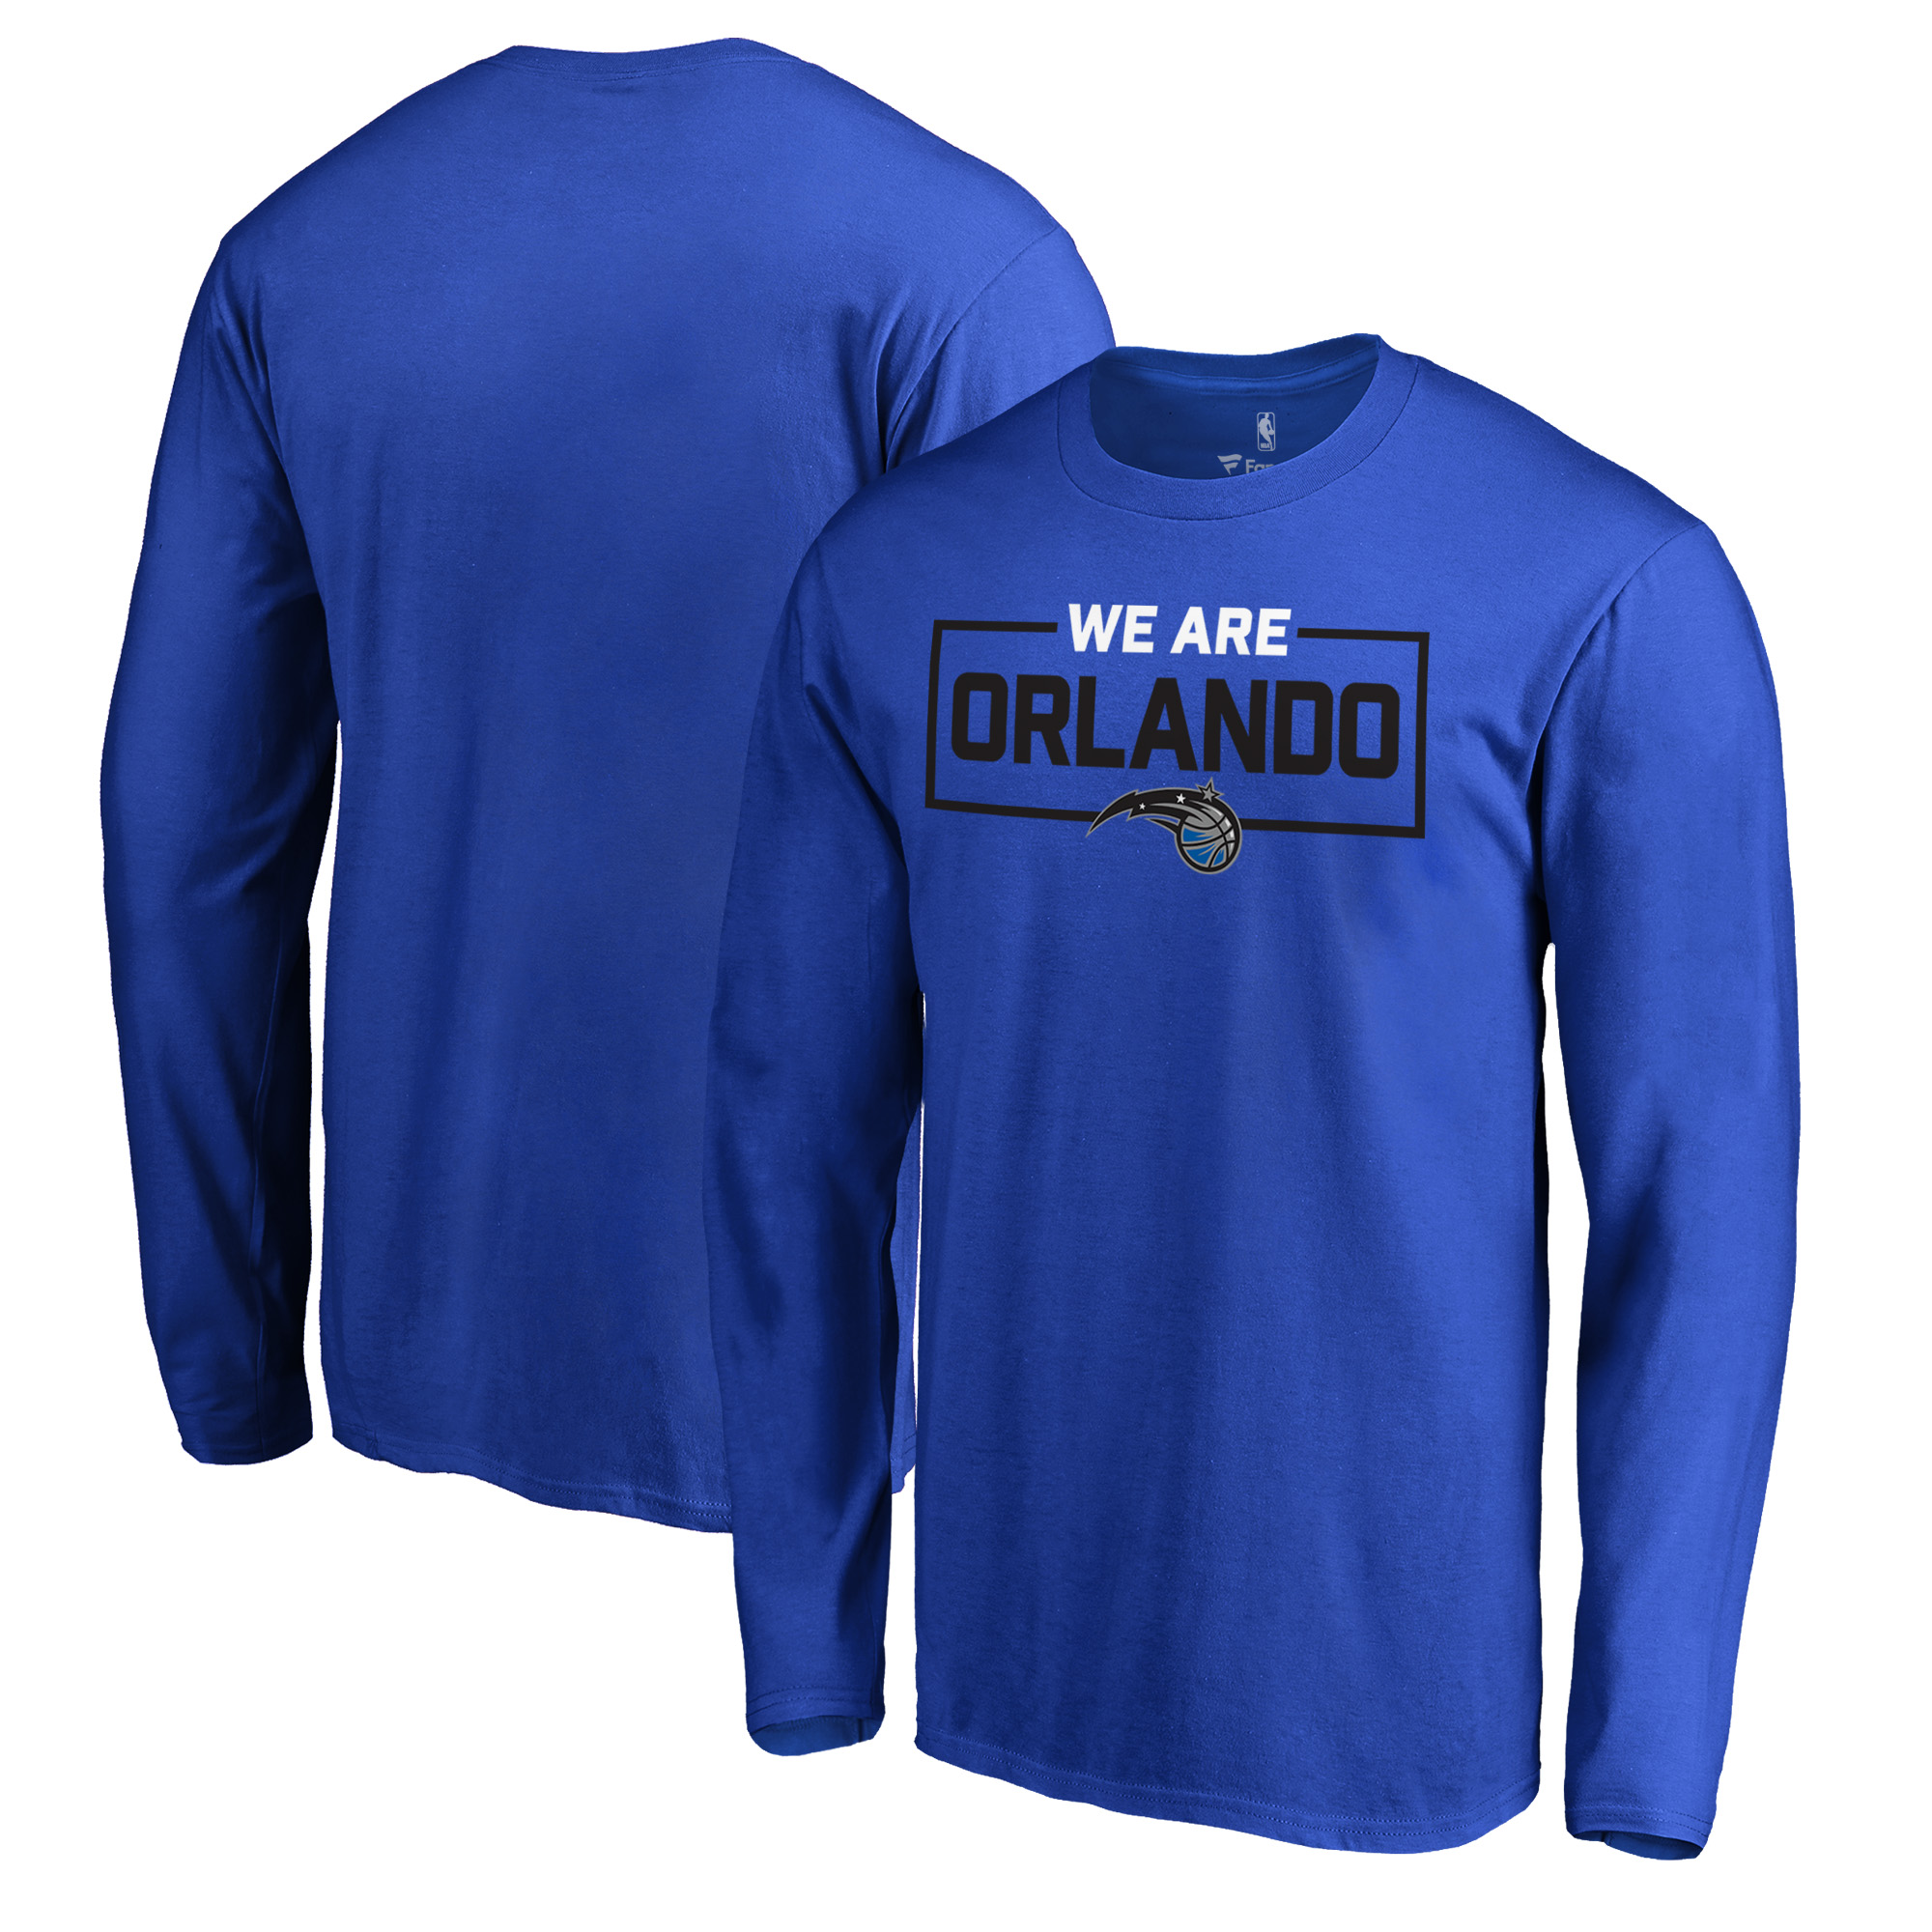 Orlando Magic Fanatics Branded We Are Iconic Collection Long Sleeve T-Shirt - Blue